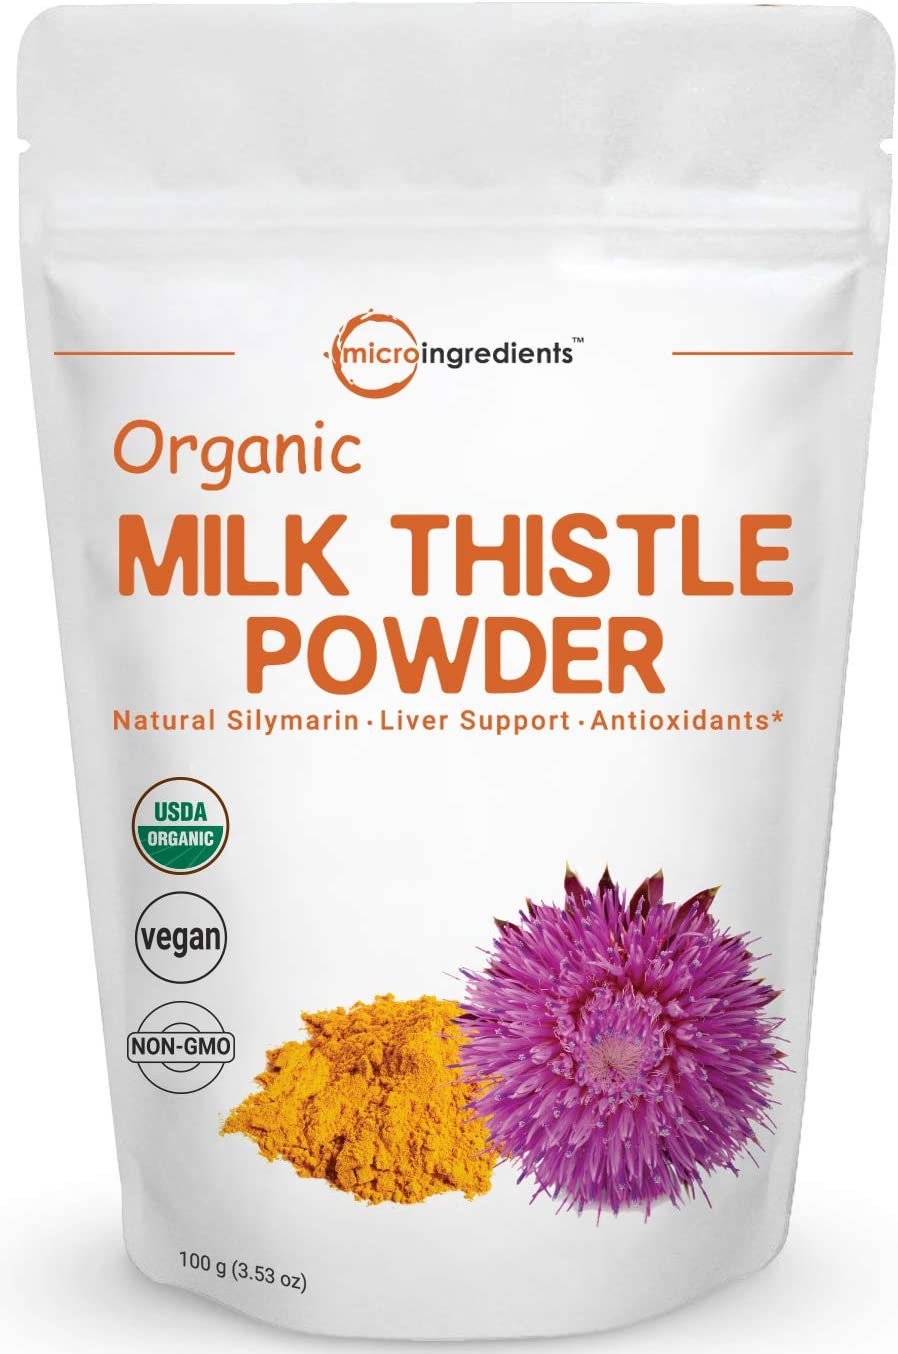 Maximum Strength Organic Milk Thistle Extract, 3.5 Ounces 100 Grams , Pure Milk Thistle Powder Organic, Contains 80 Active Silymarin, Strongly Supports Liver Health and Antioxidant, Vegan Friendly